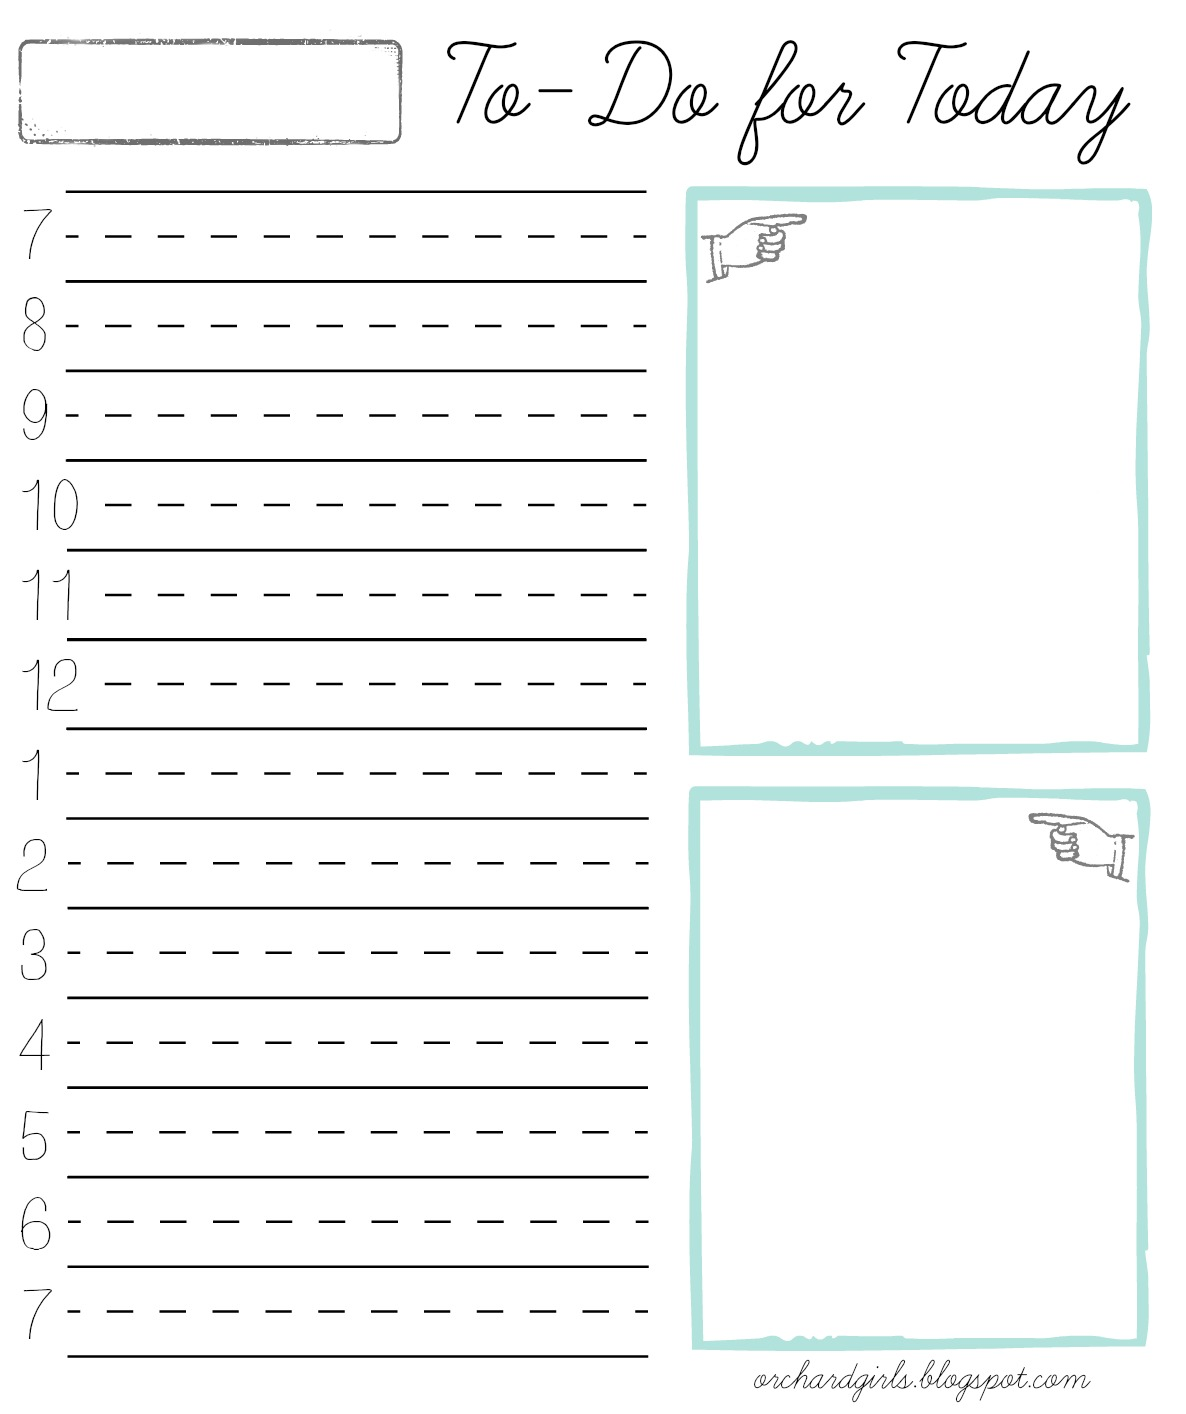 orchard girls daily time block notepad w free printable. Black Bedroom Furniture Sets. Home Design Ideas